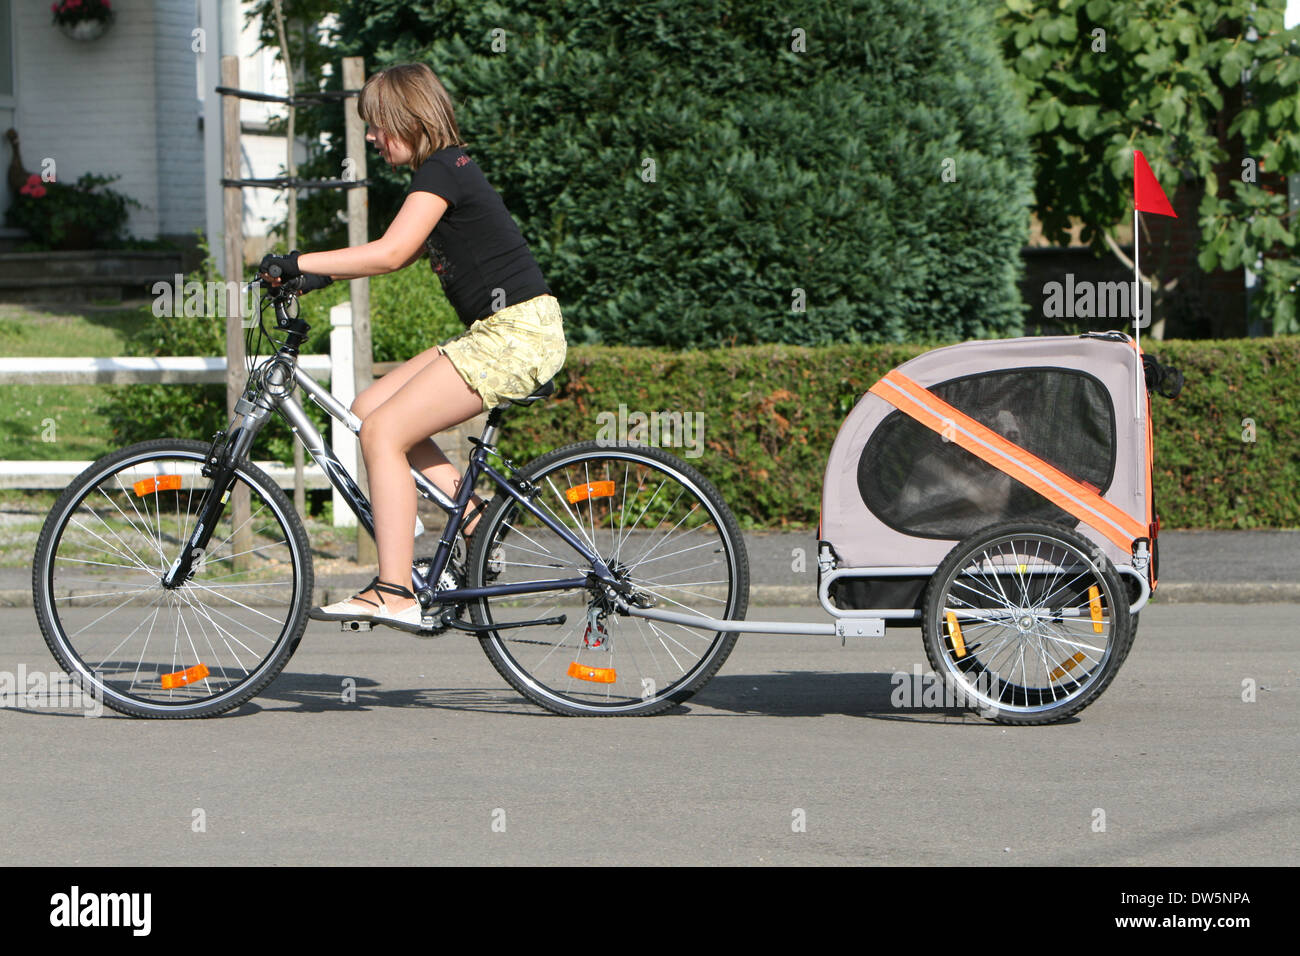 a girl riding a bike with a dog border collie in a trailer stock photo 67124354 alamy. Black Bedroom Furniture Sets. Home Design Ideas